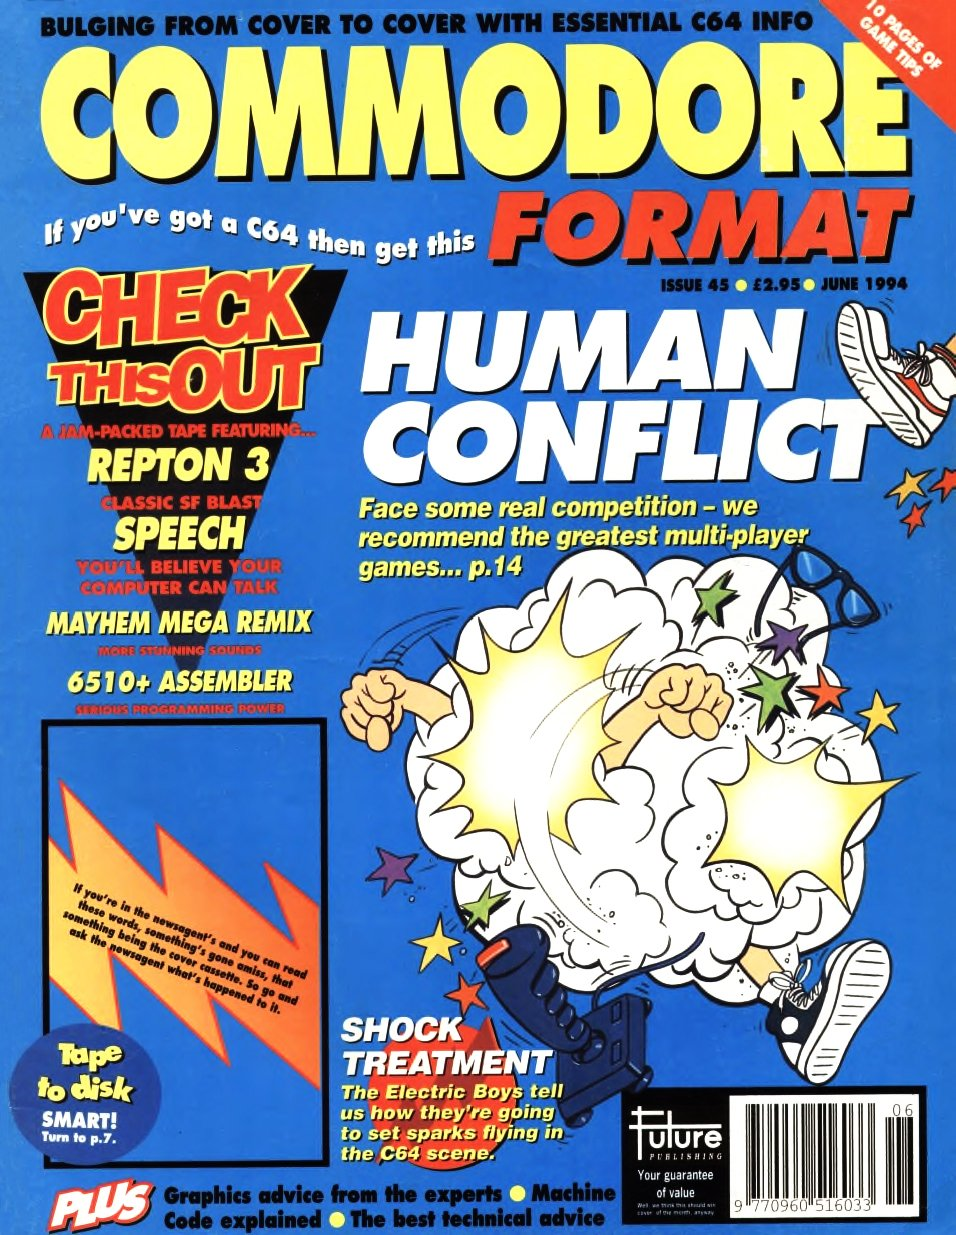 Commodore Format Issue 45 (June 1994)